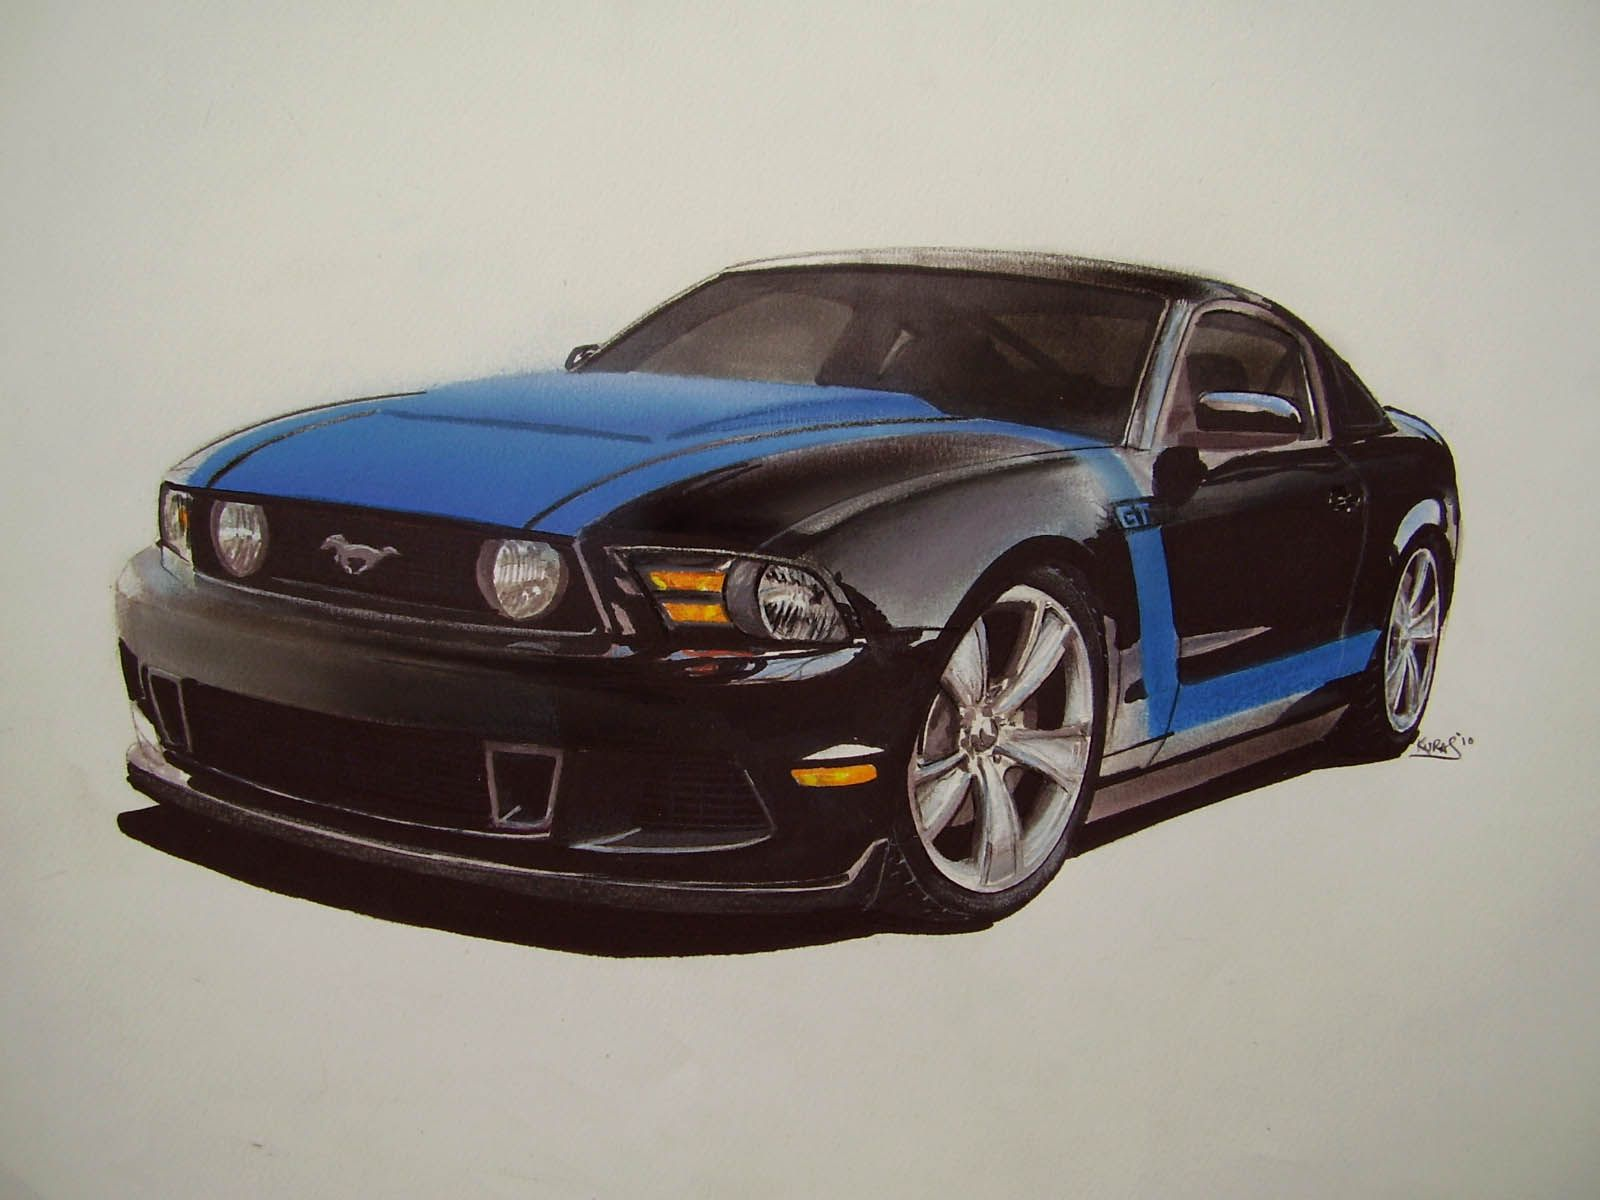 1600x1200 Colorful Pictures Of Muscle Cars Car Drawings, Illustration,